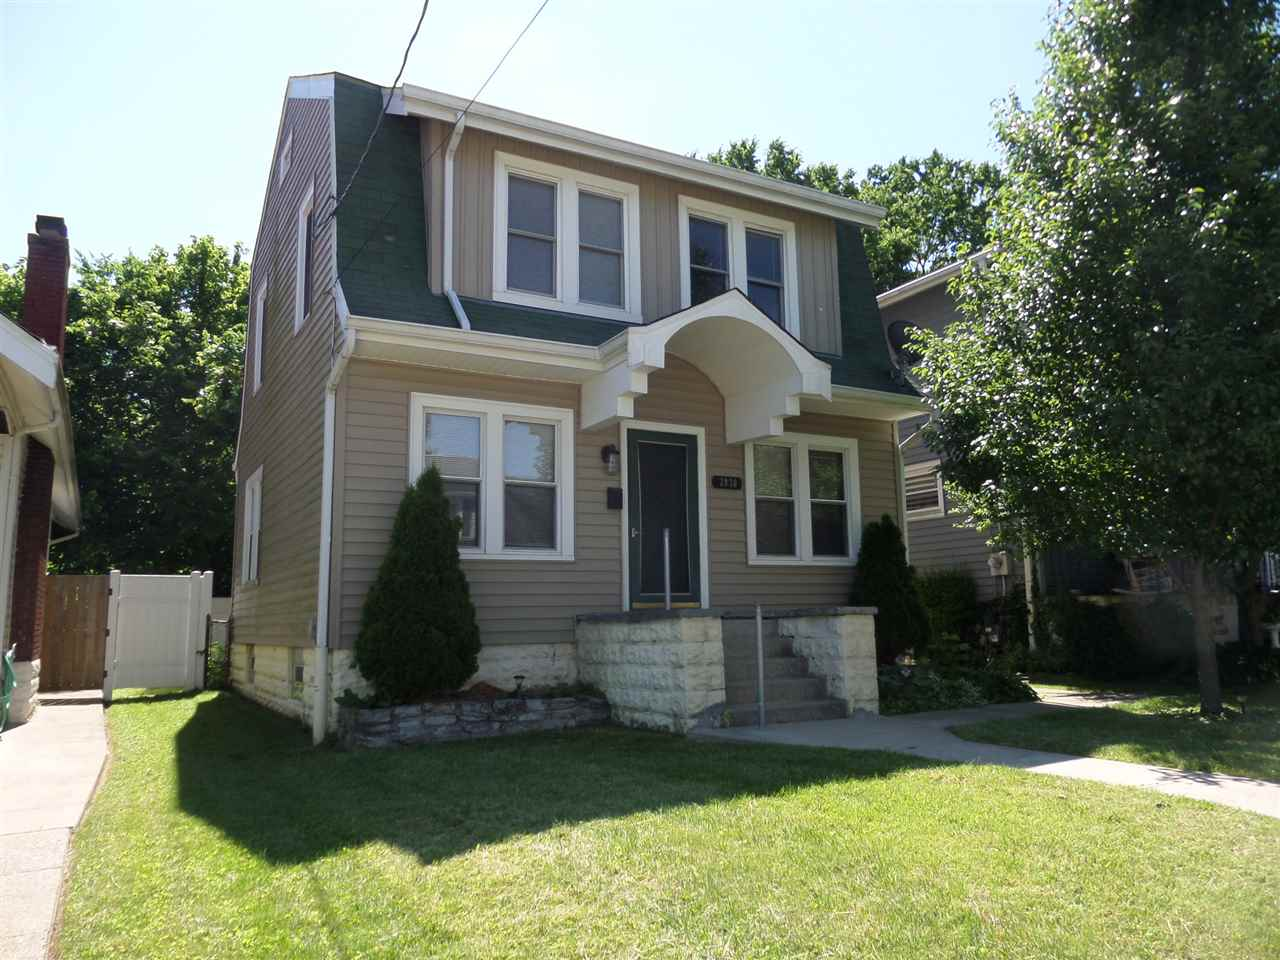 Photo 1 for 2830 Aberdeen Ave Covington, KY 41015